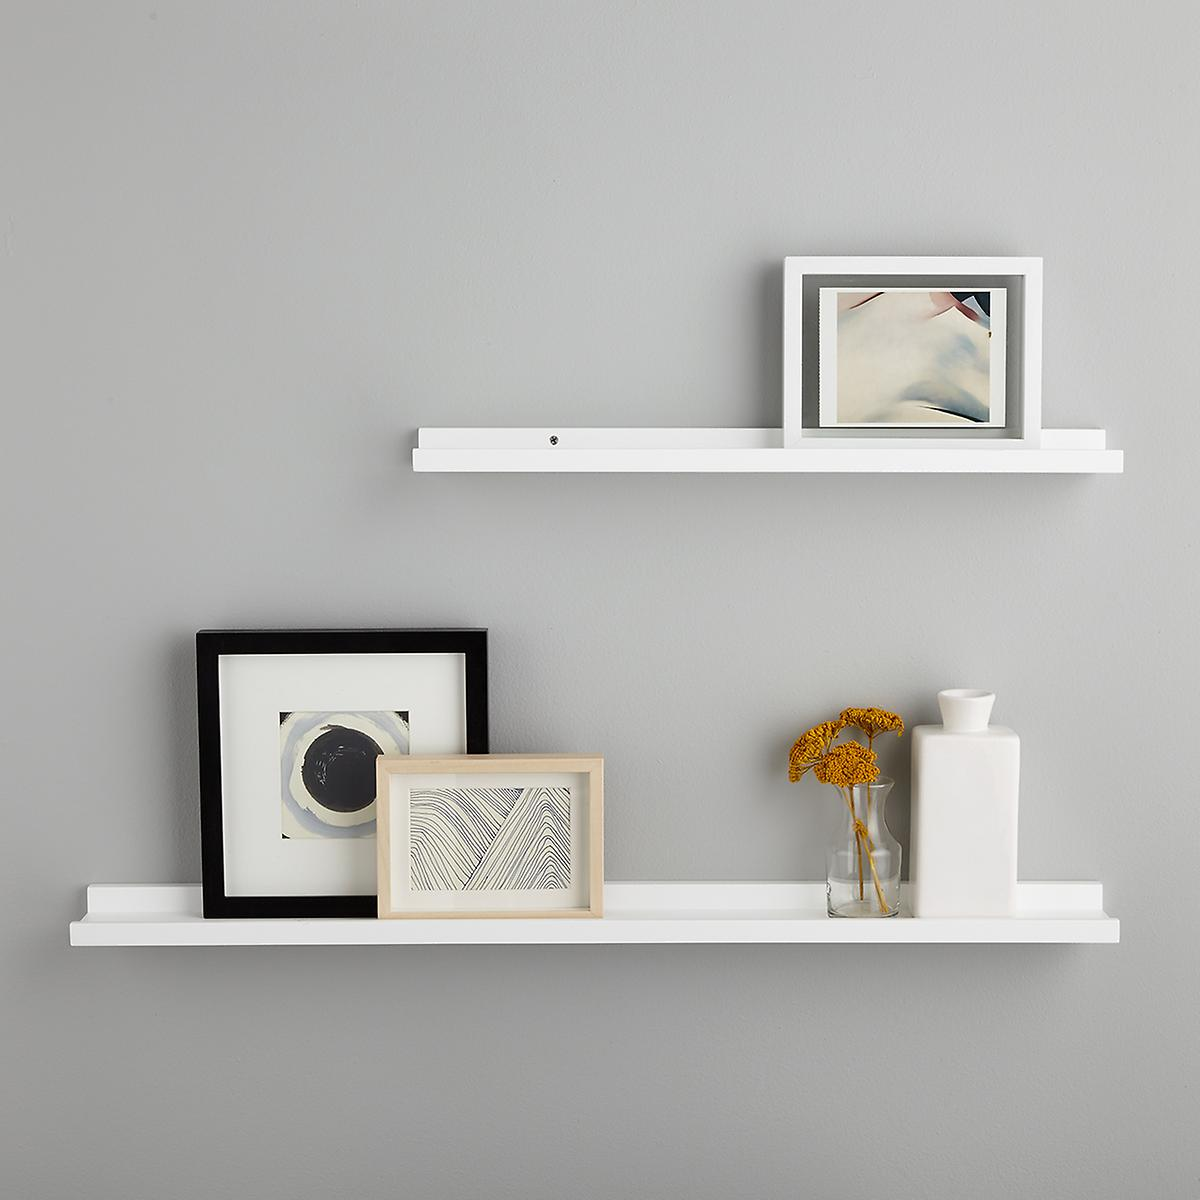 white ledge wall shelves the container shelf floating velcro hanging hooks real wood outdoor shelving brackets kitchen cube end small design open deep bookcase glass support